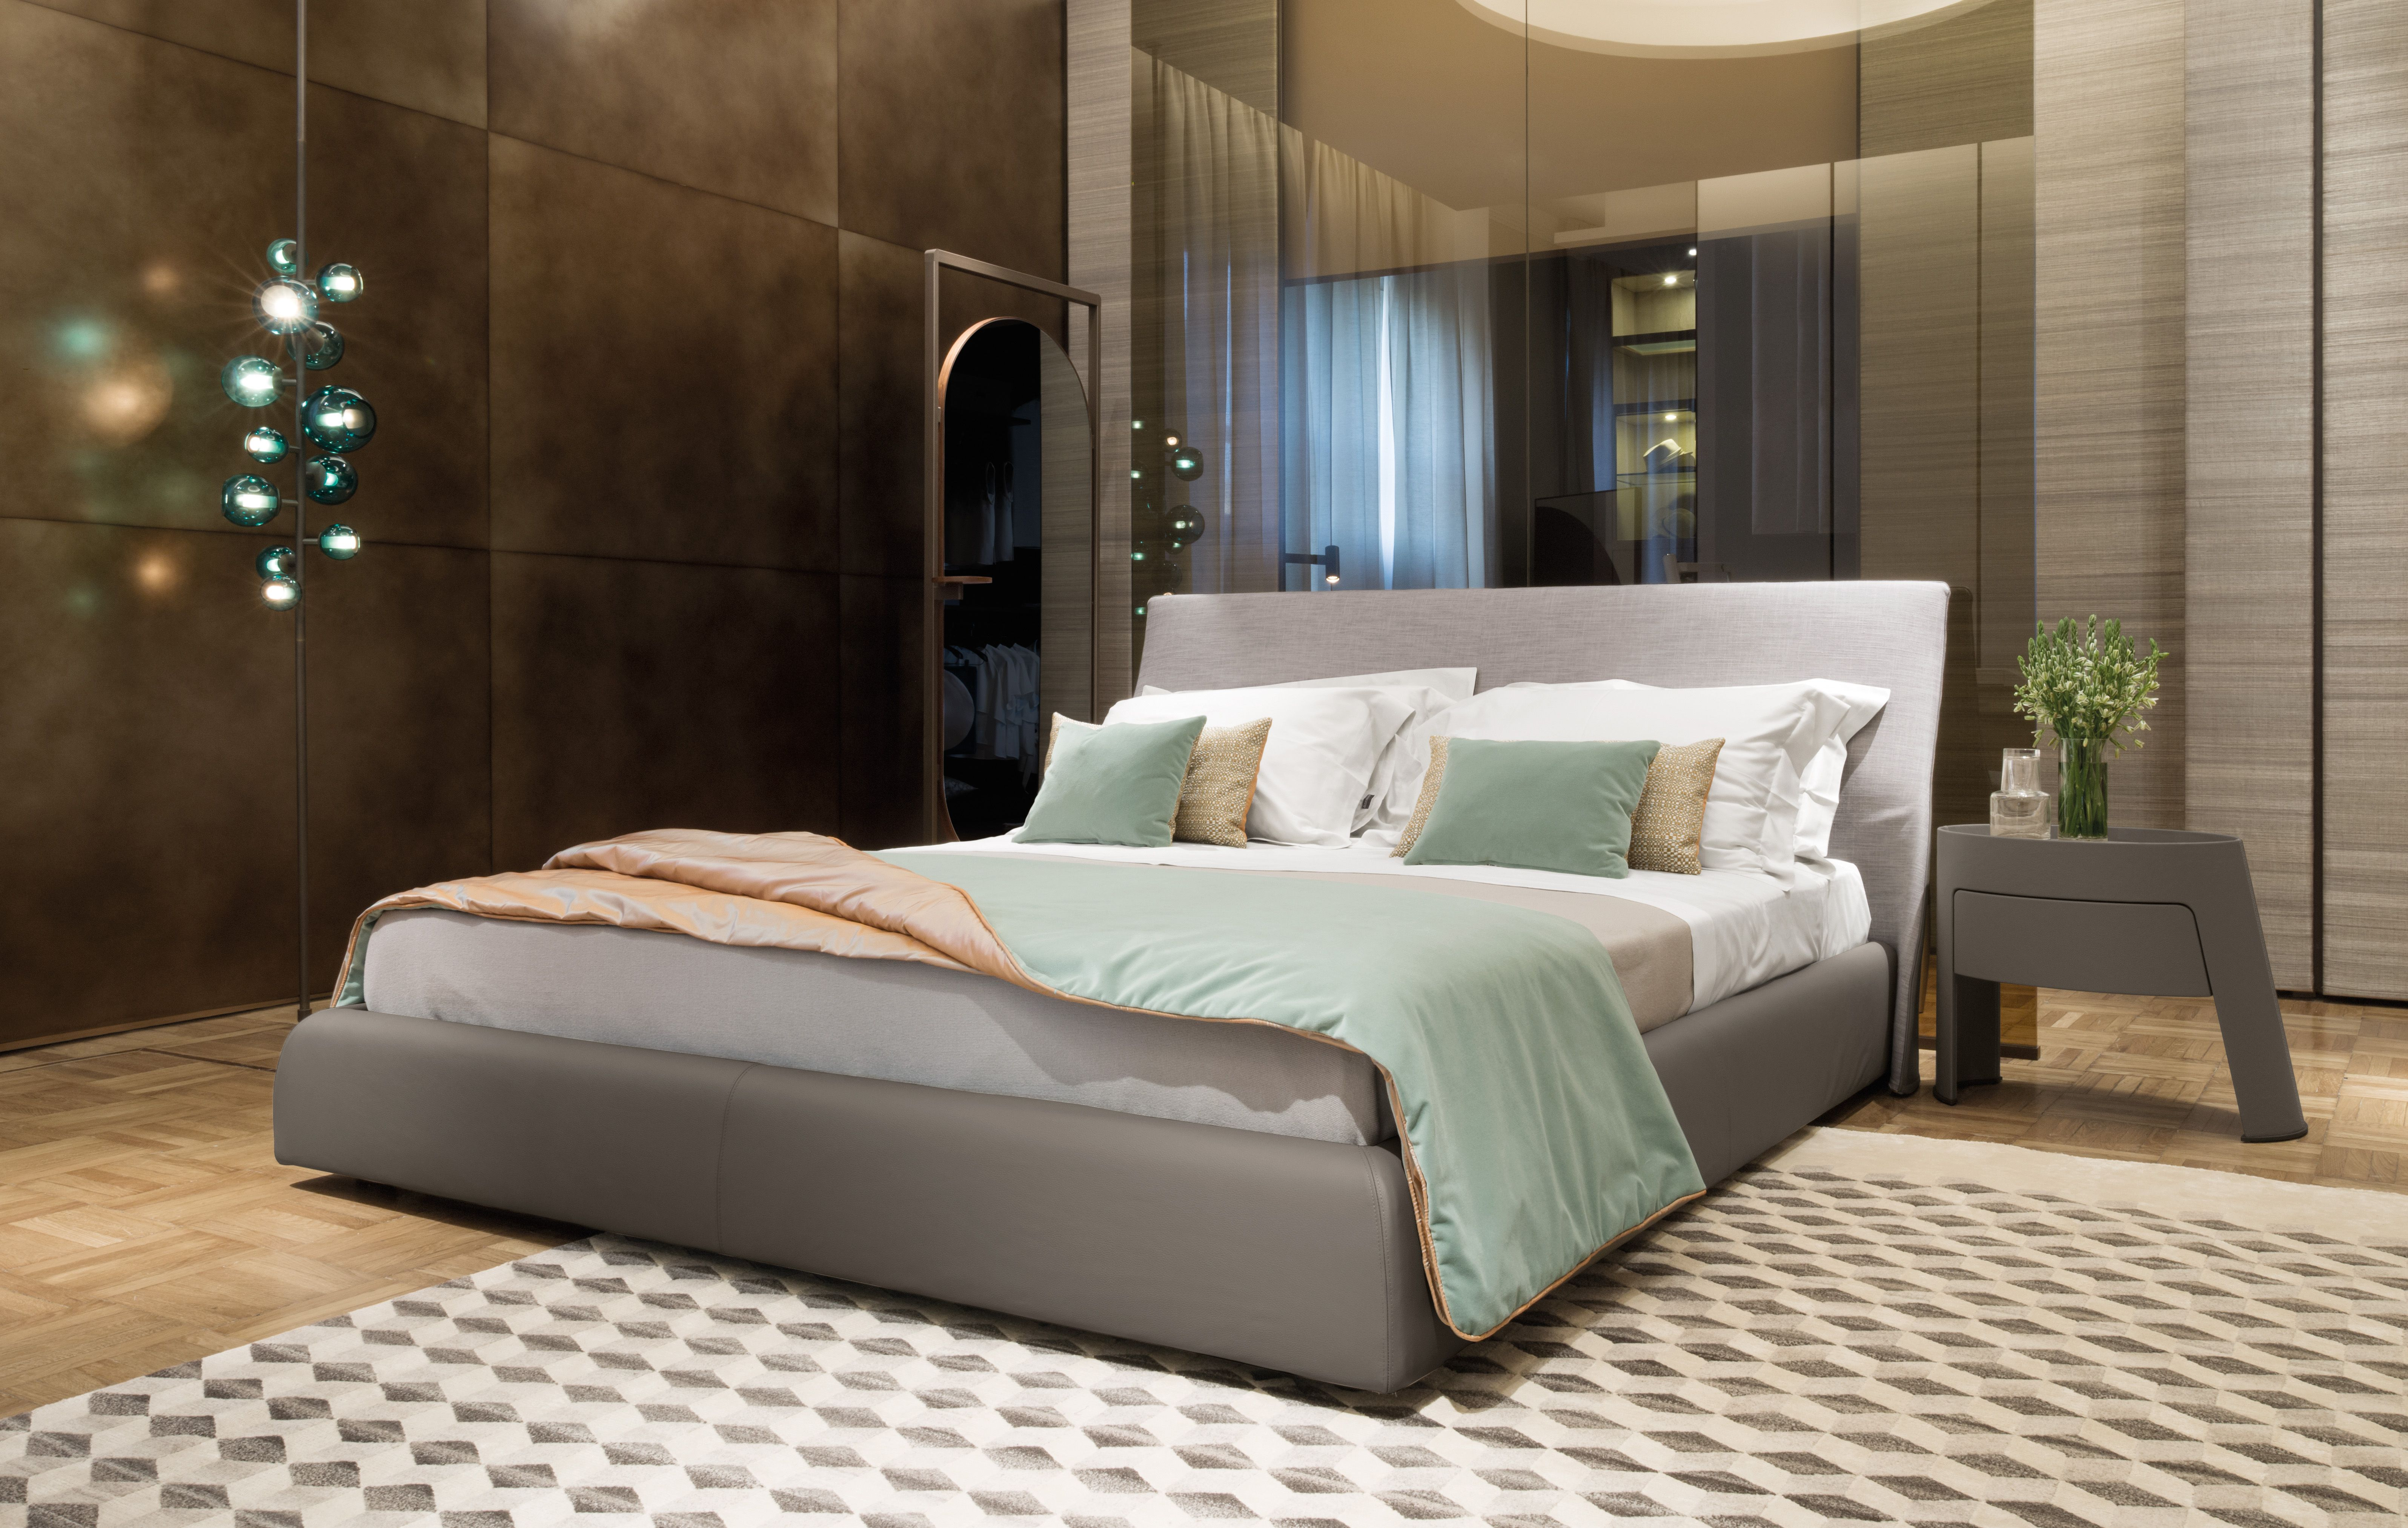 Find out Giorgetti Sleeping Area.  #Giorgetti #interior #design #luxury #furniture #home #homedesign #homedecor #interiordesign #interiorideas #madeinitaly #architect #architectlovers #sleepingroom #bedroom #bed